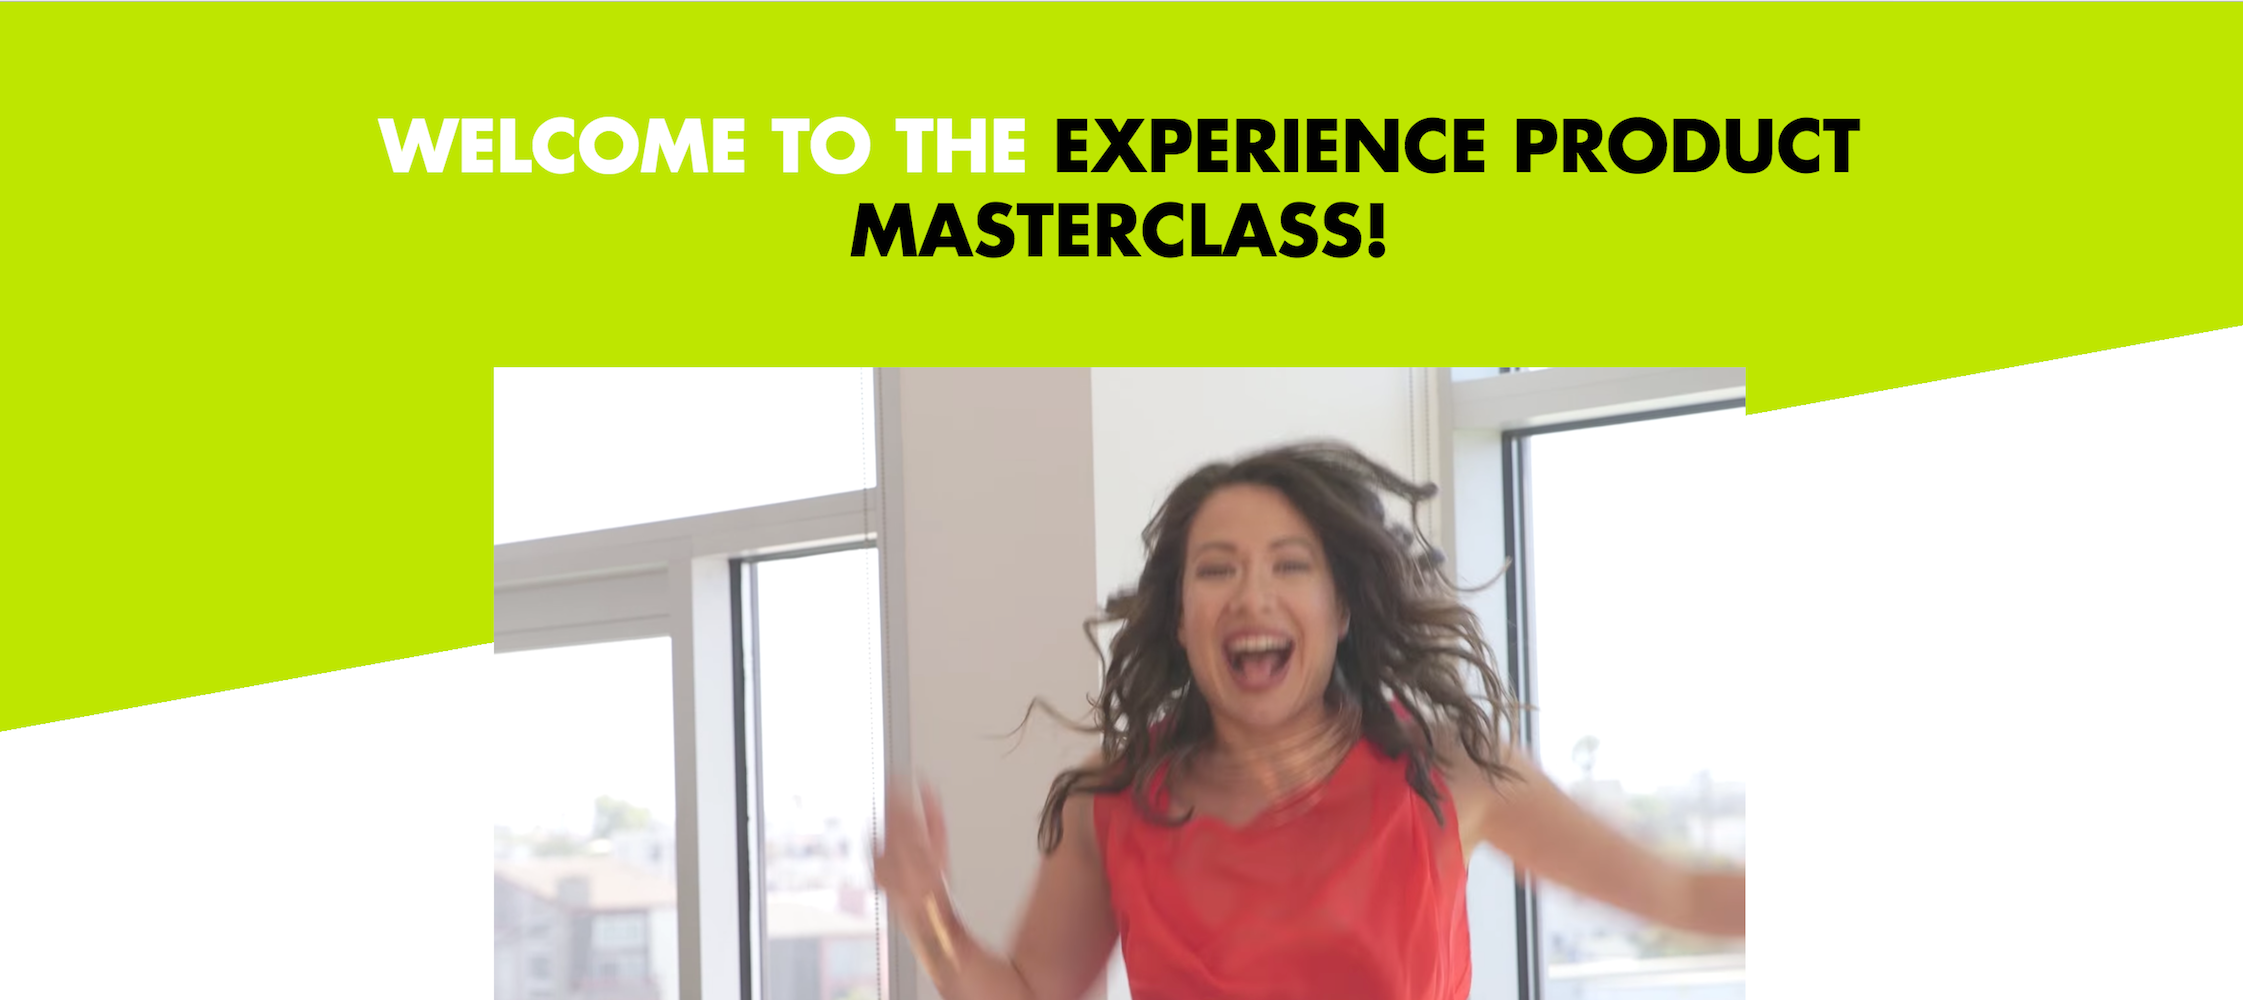 Experience Product Masterclass by Marisa Murgatroyd Welcome Page